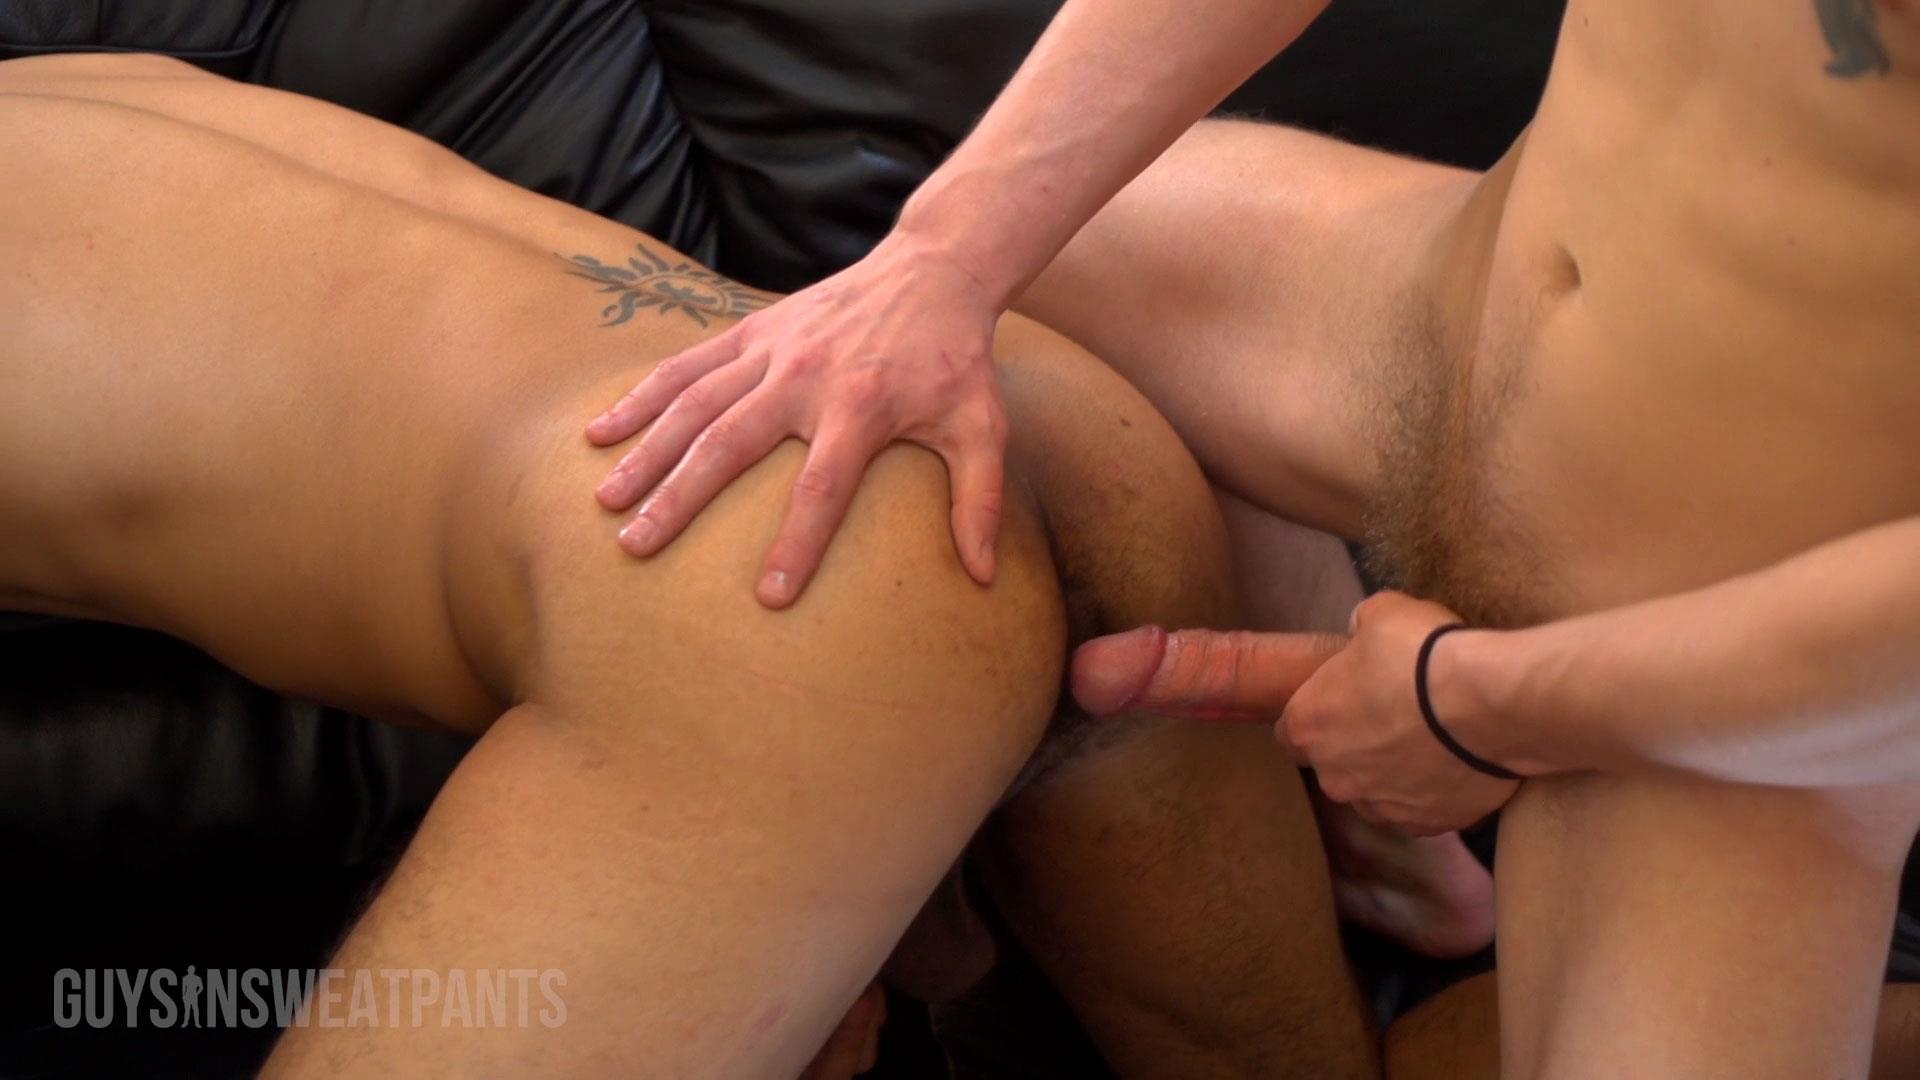 Guys In Sweatpants Ezekiel Stone and Dillon Hays Interracial bareback fucking Amateur Gay Porn 03